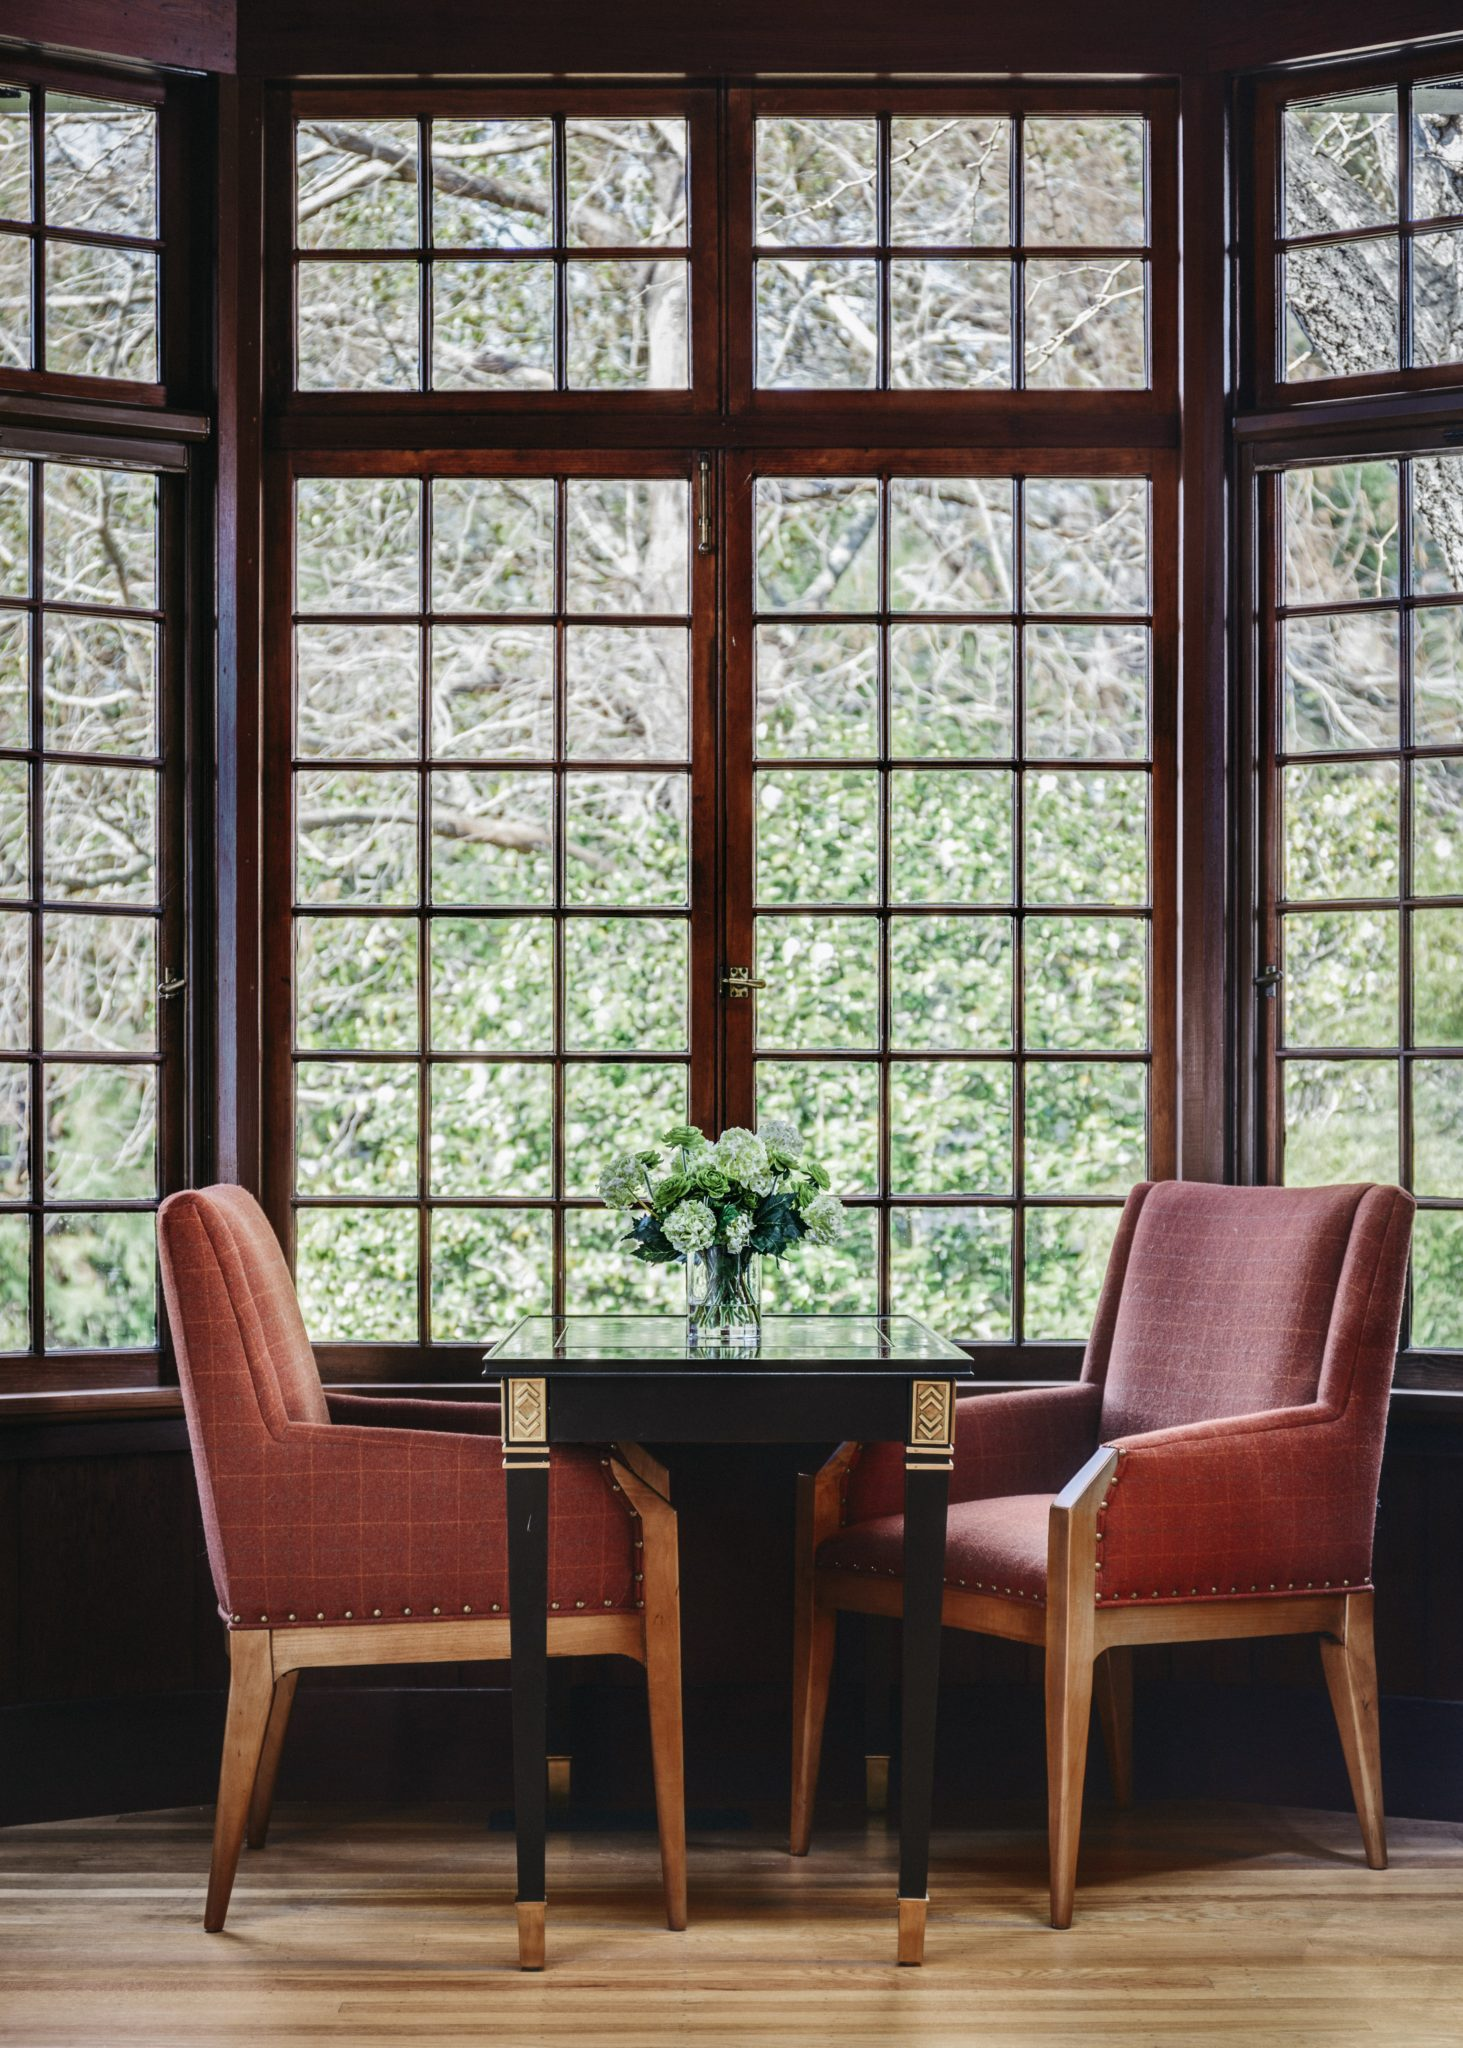 The elegant arm chairs and game table are from Hickory Chair.